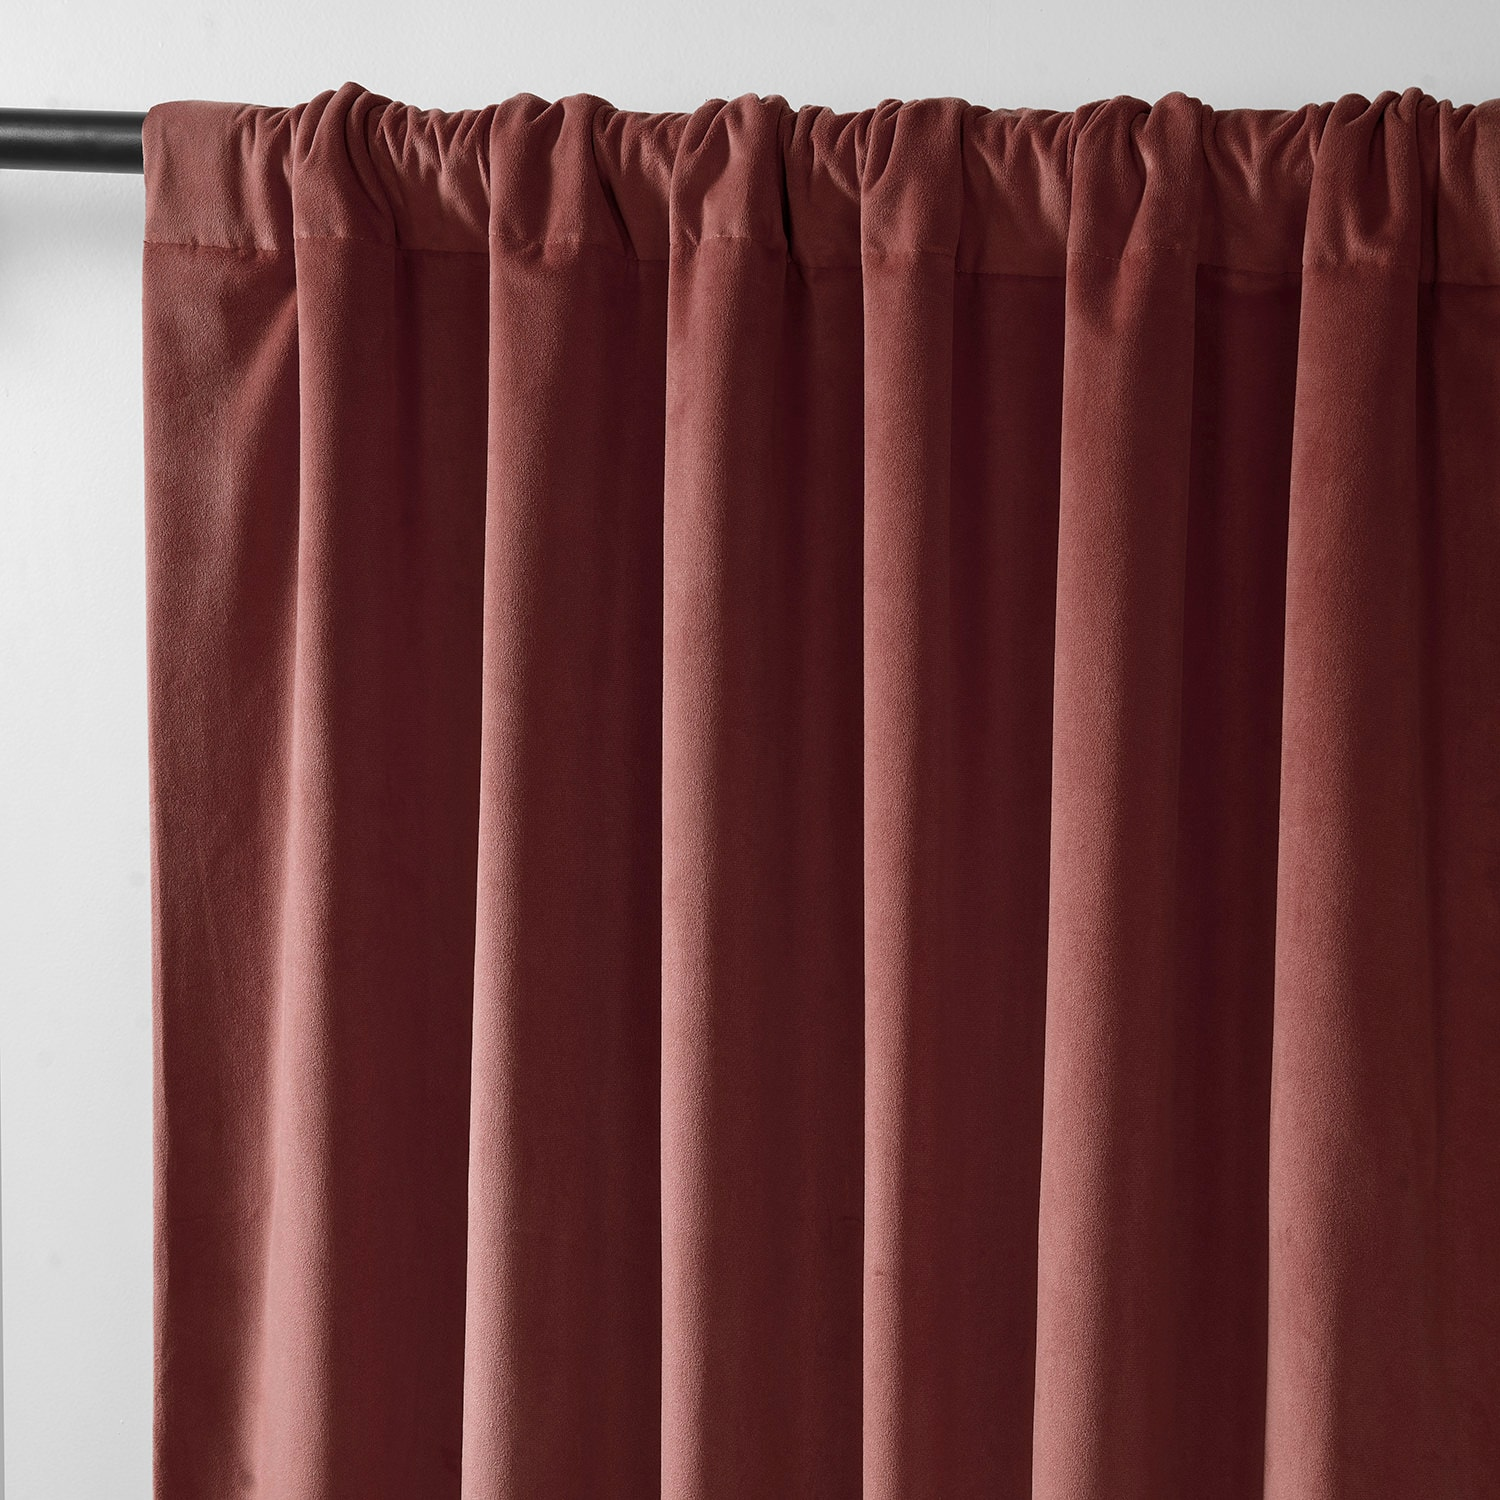 Signature Crimson Rust Blackout Velvet Curtain